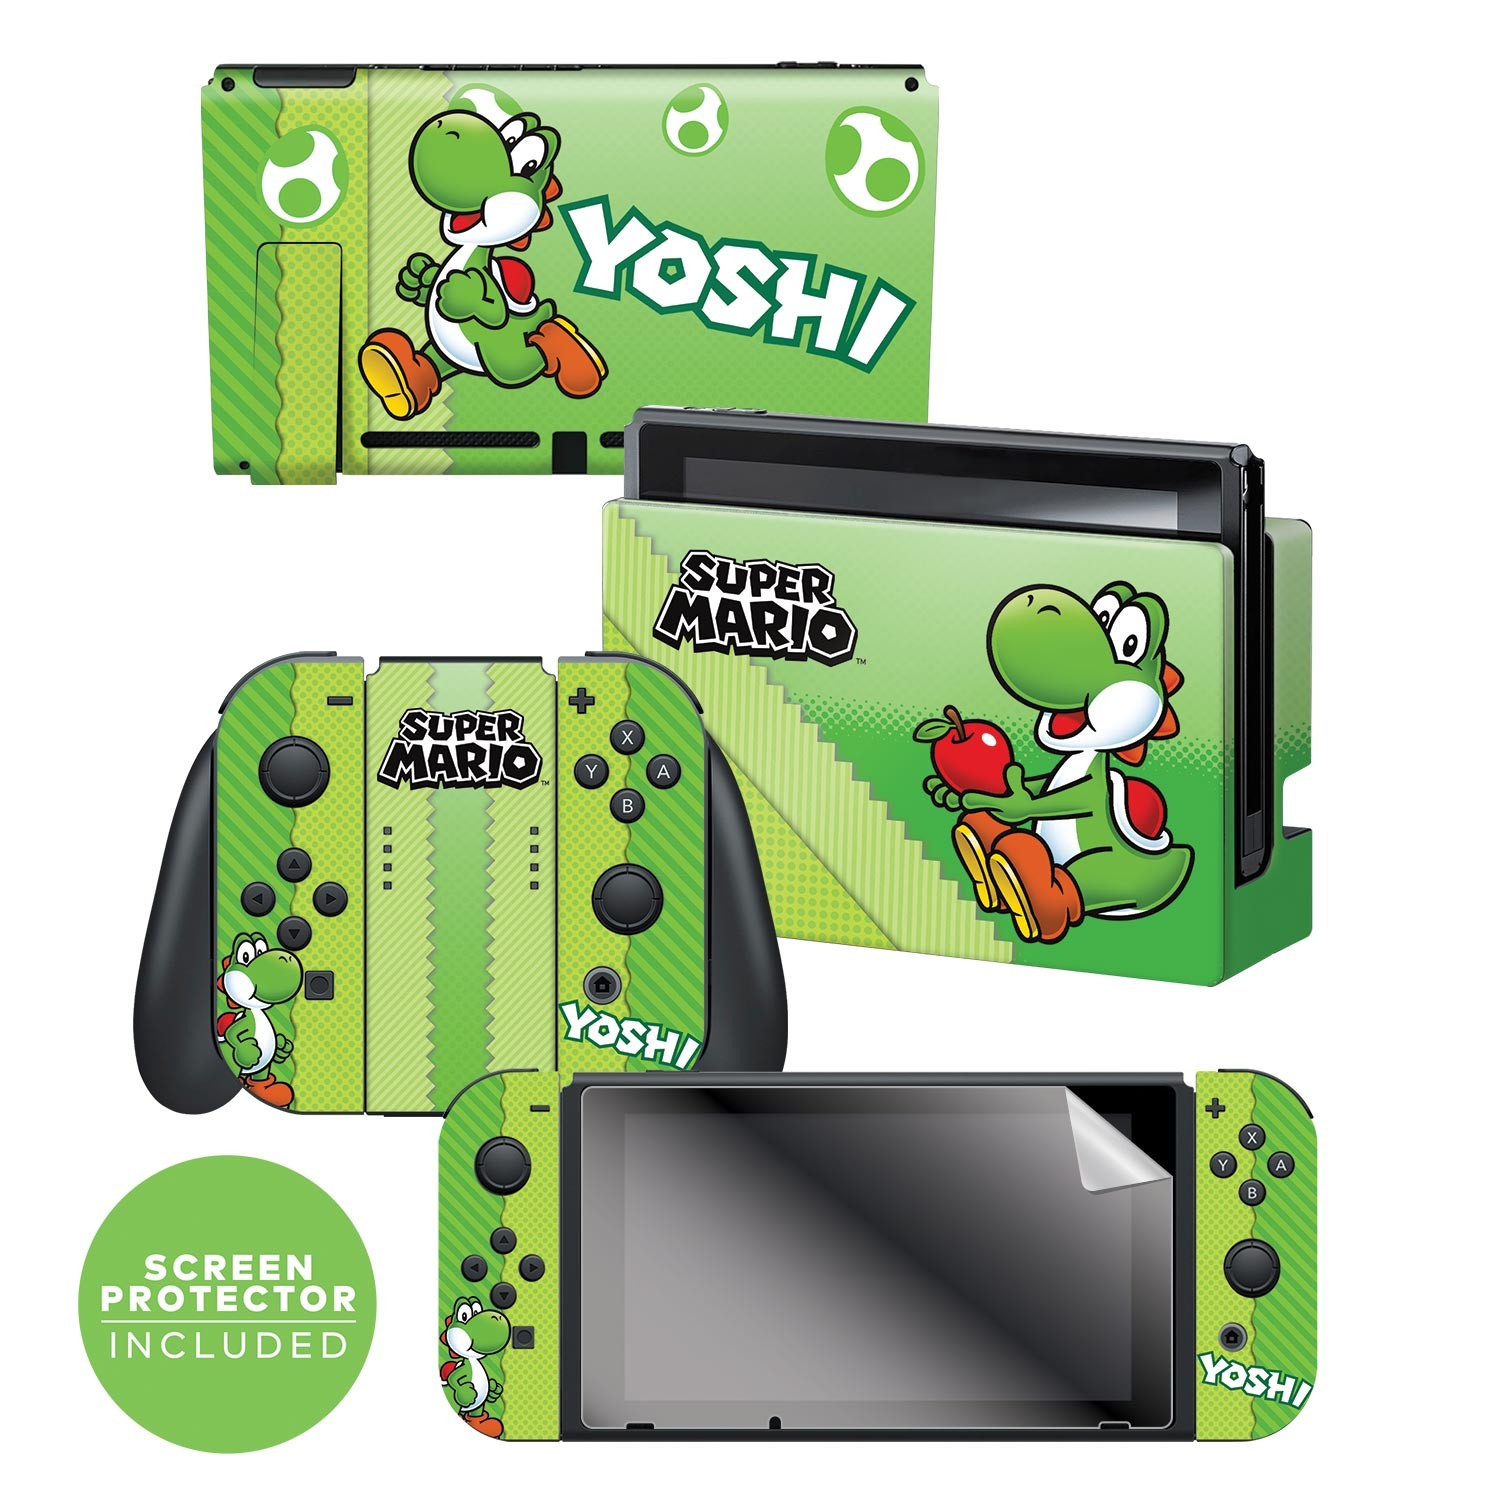 "Super Mario™ ""Yoshi Eggs"" Nintendo Switch™ Console skin + Dock Skin + Joy-Con™ skin +  Joy-Con™ Grip Skin + Screen Protector Bundle Assortment, Officially Licensed by Nintendo"